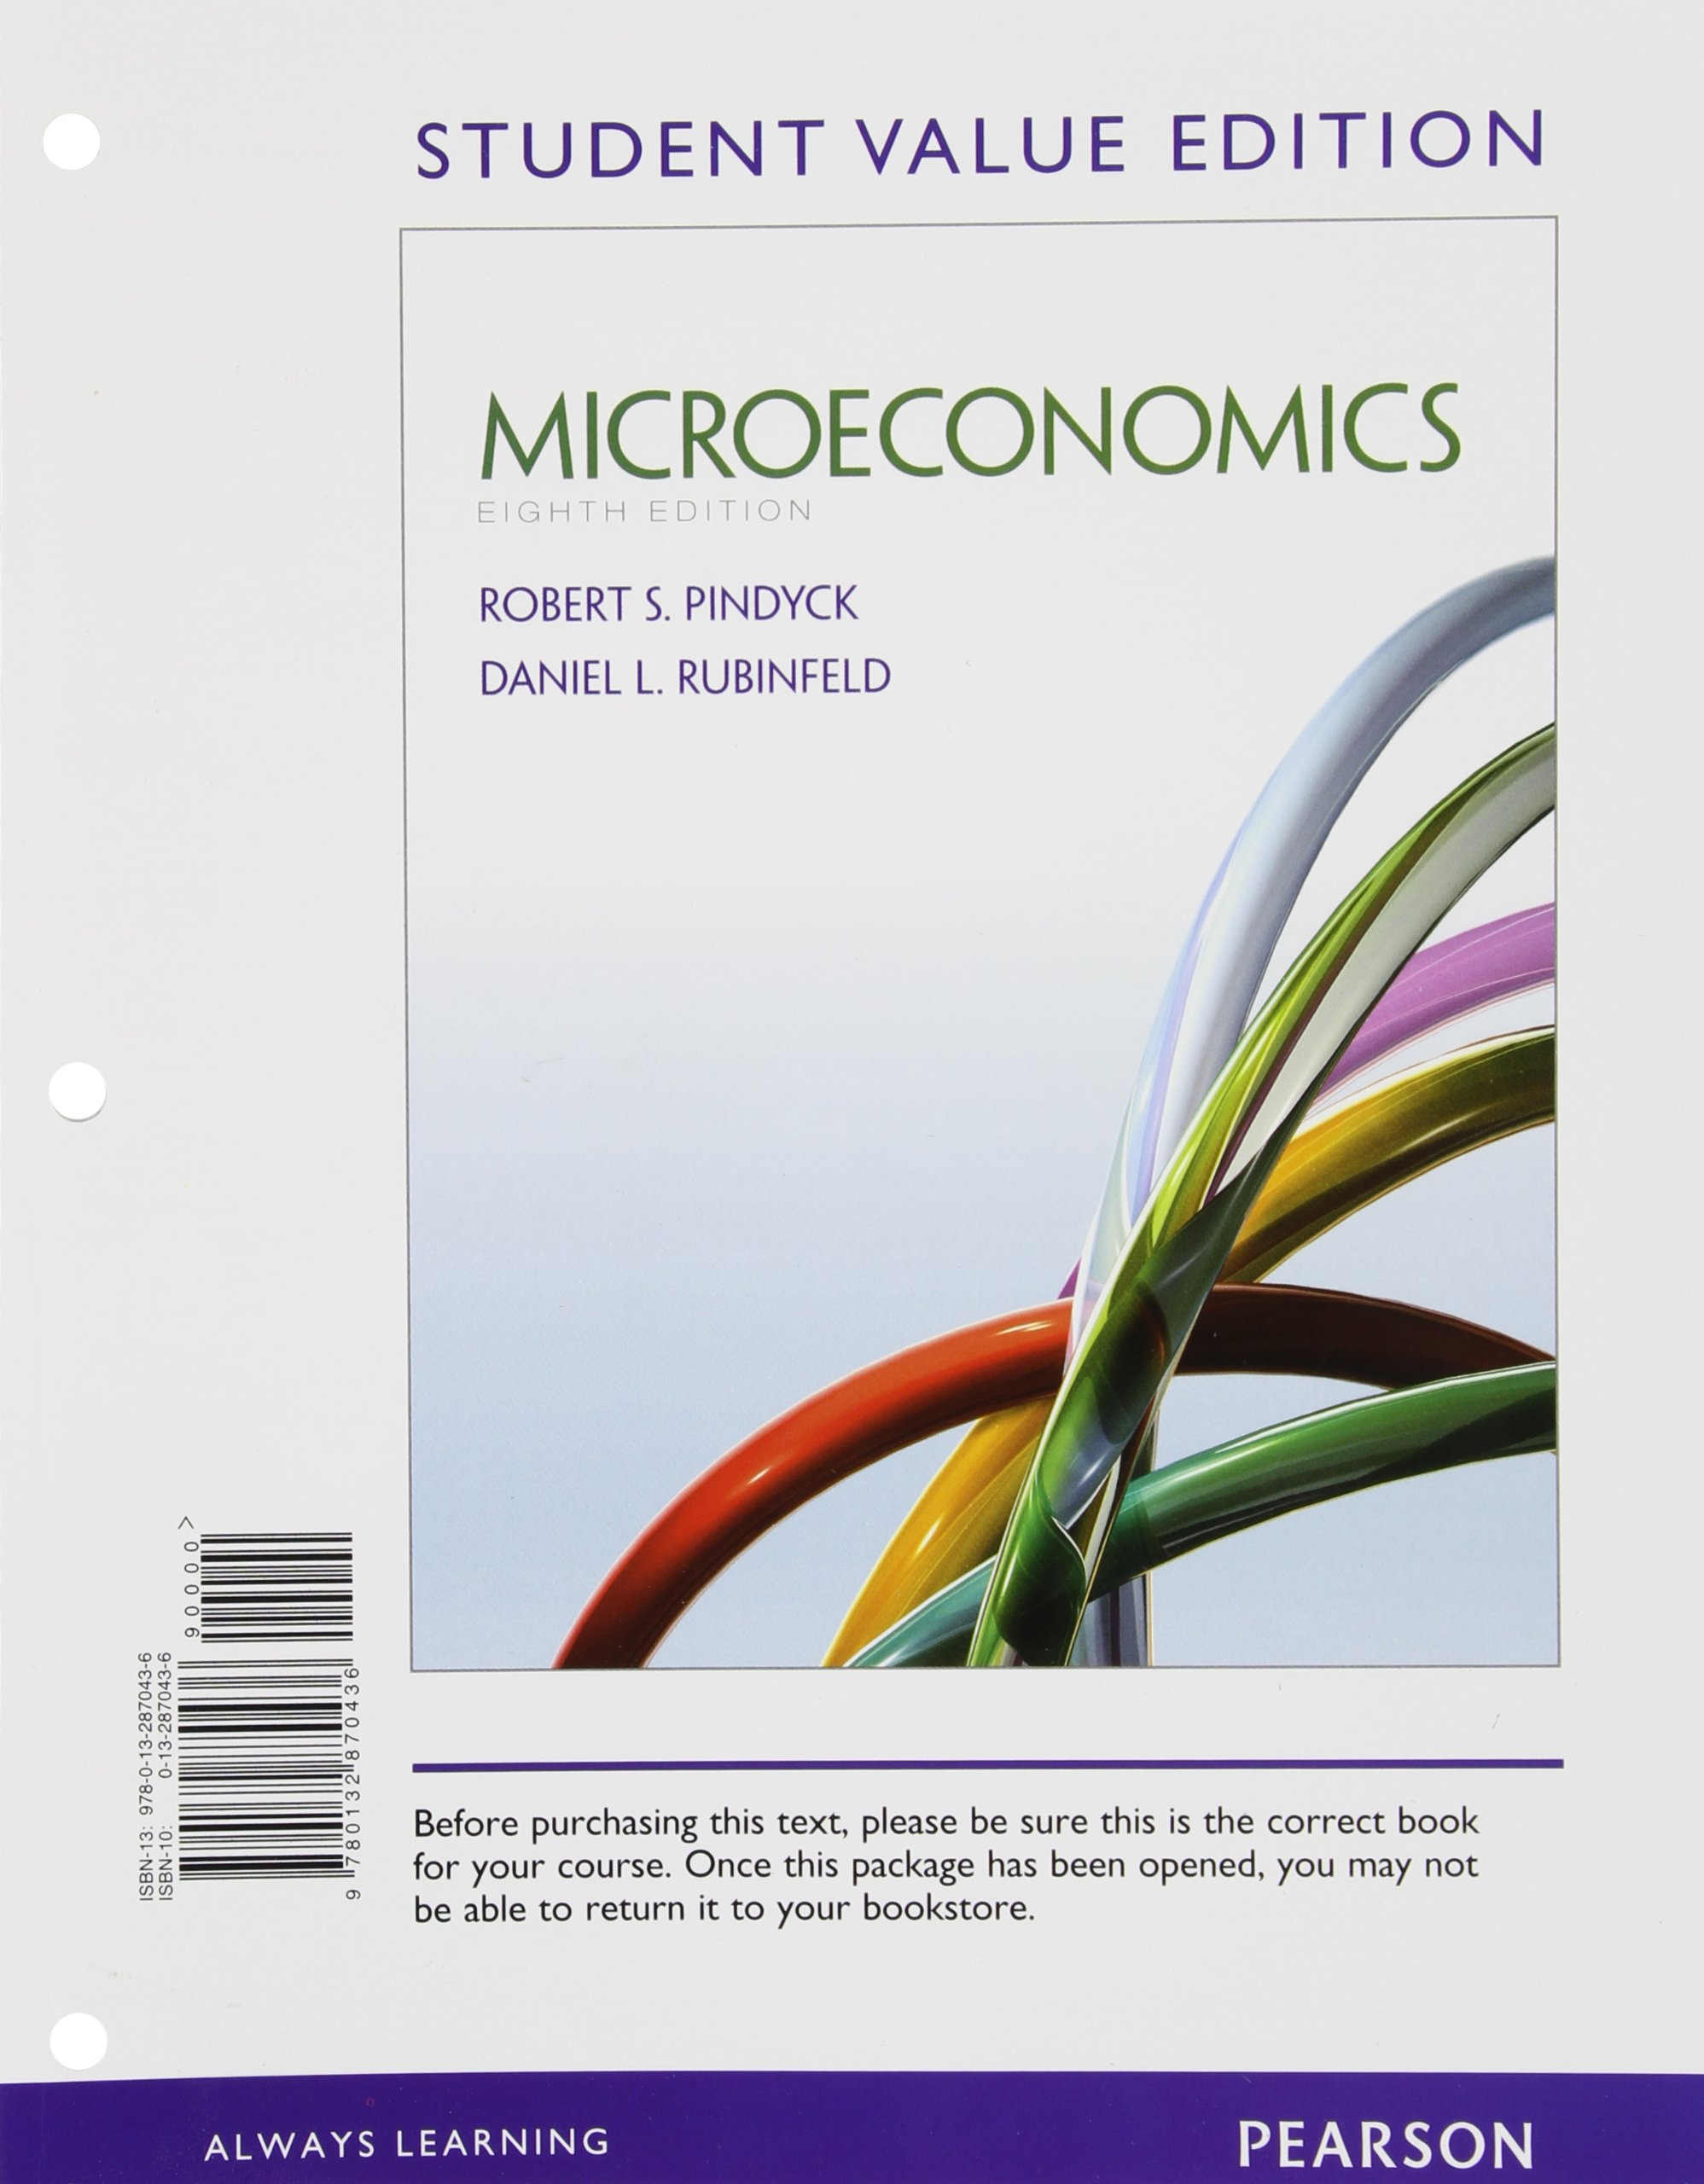 microeconomics pindyck rubinfeld ebook download